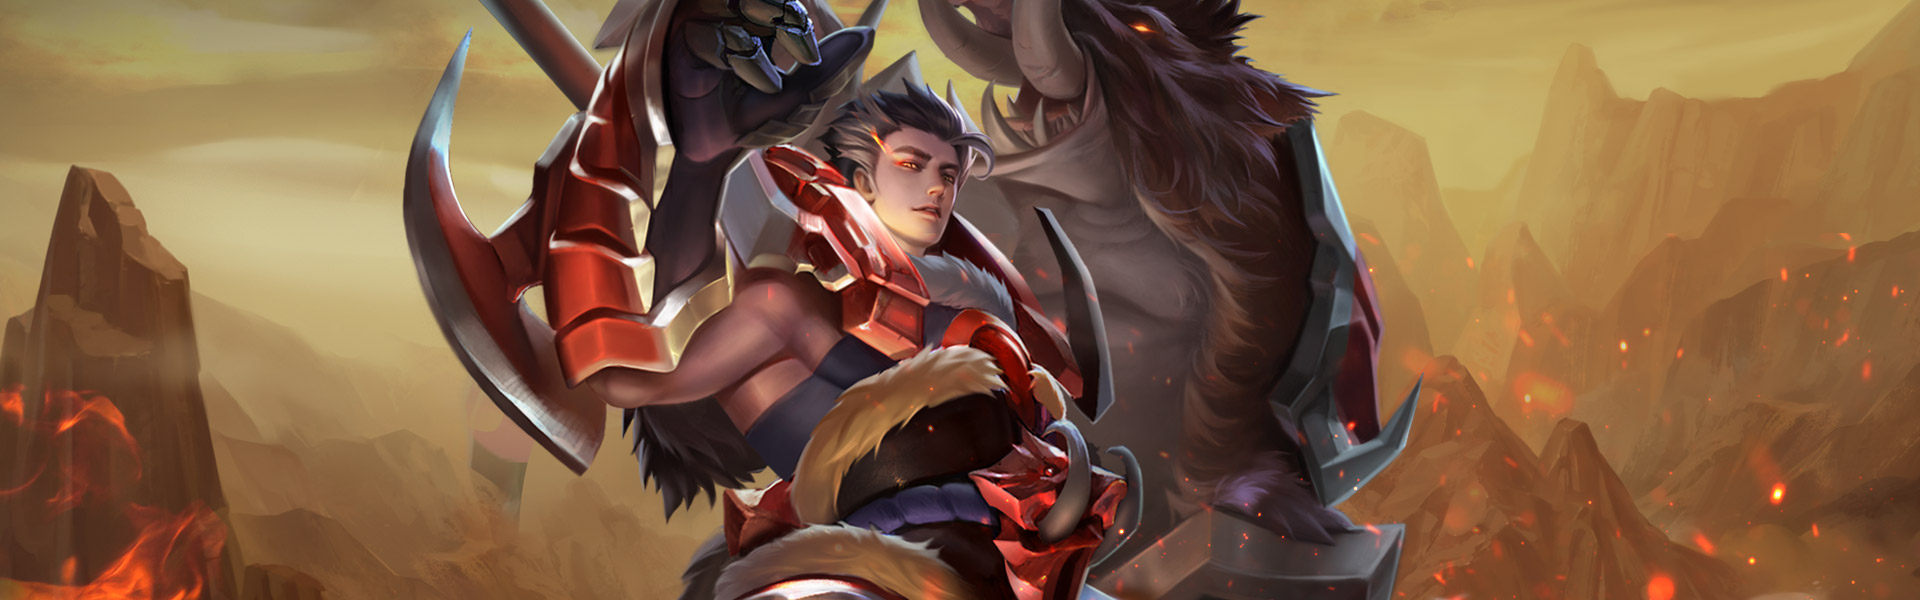 Heroes Evolved Update - May 17 2019